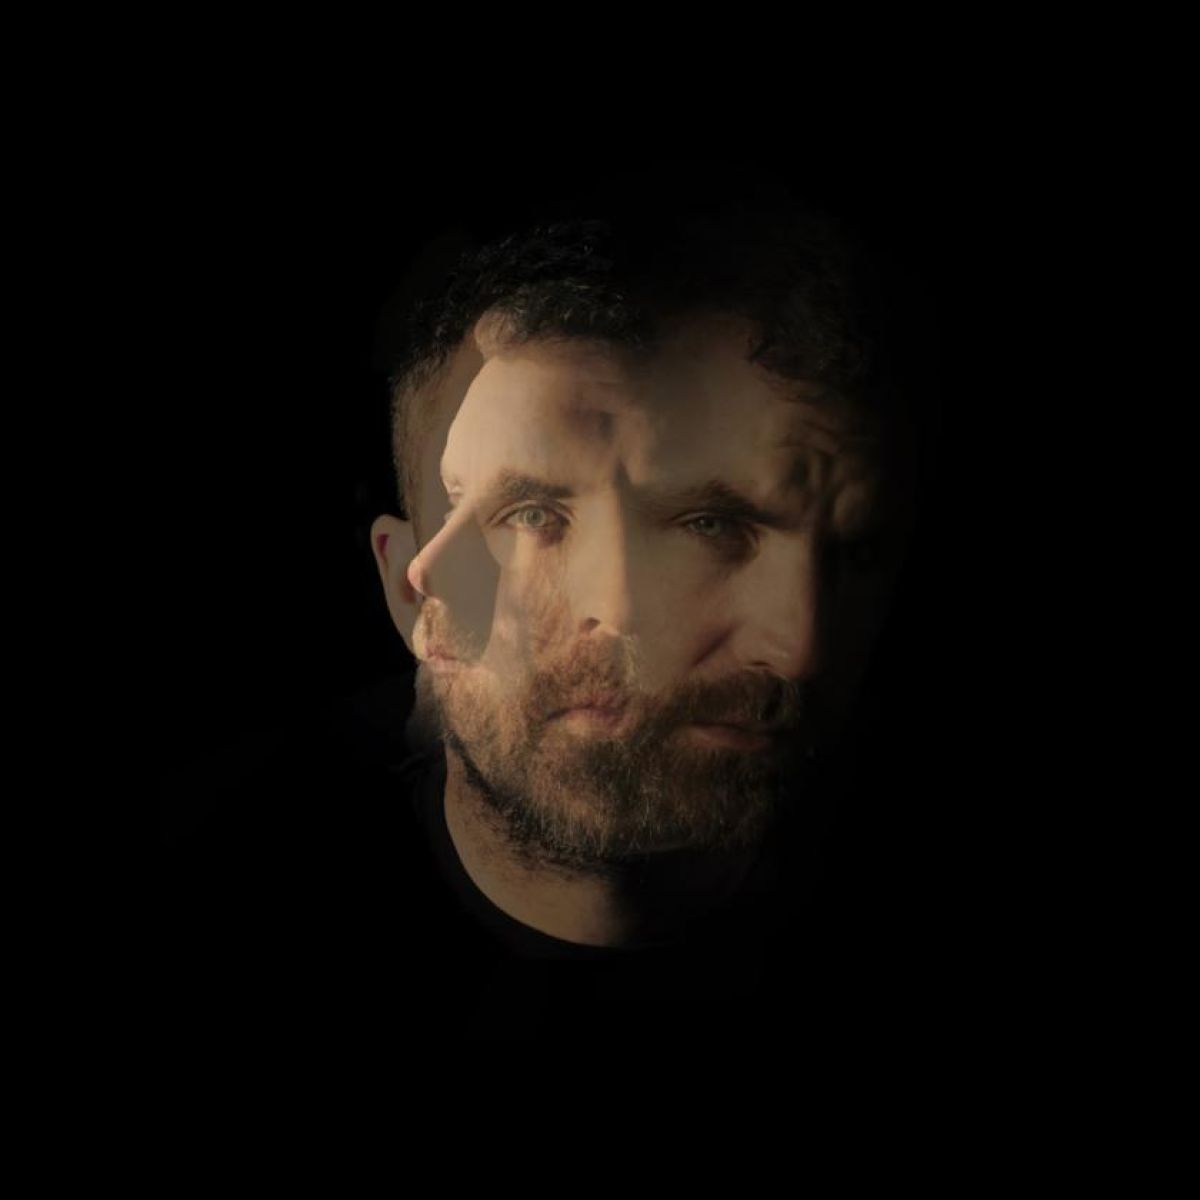 Mick Flannery: Mick Flannery review – Poignant meditations